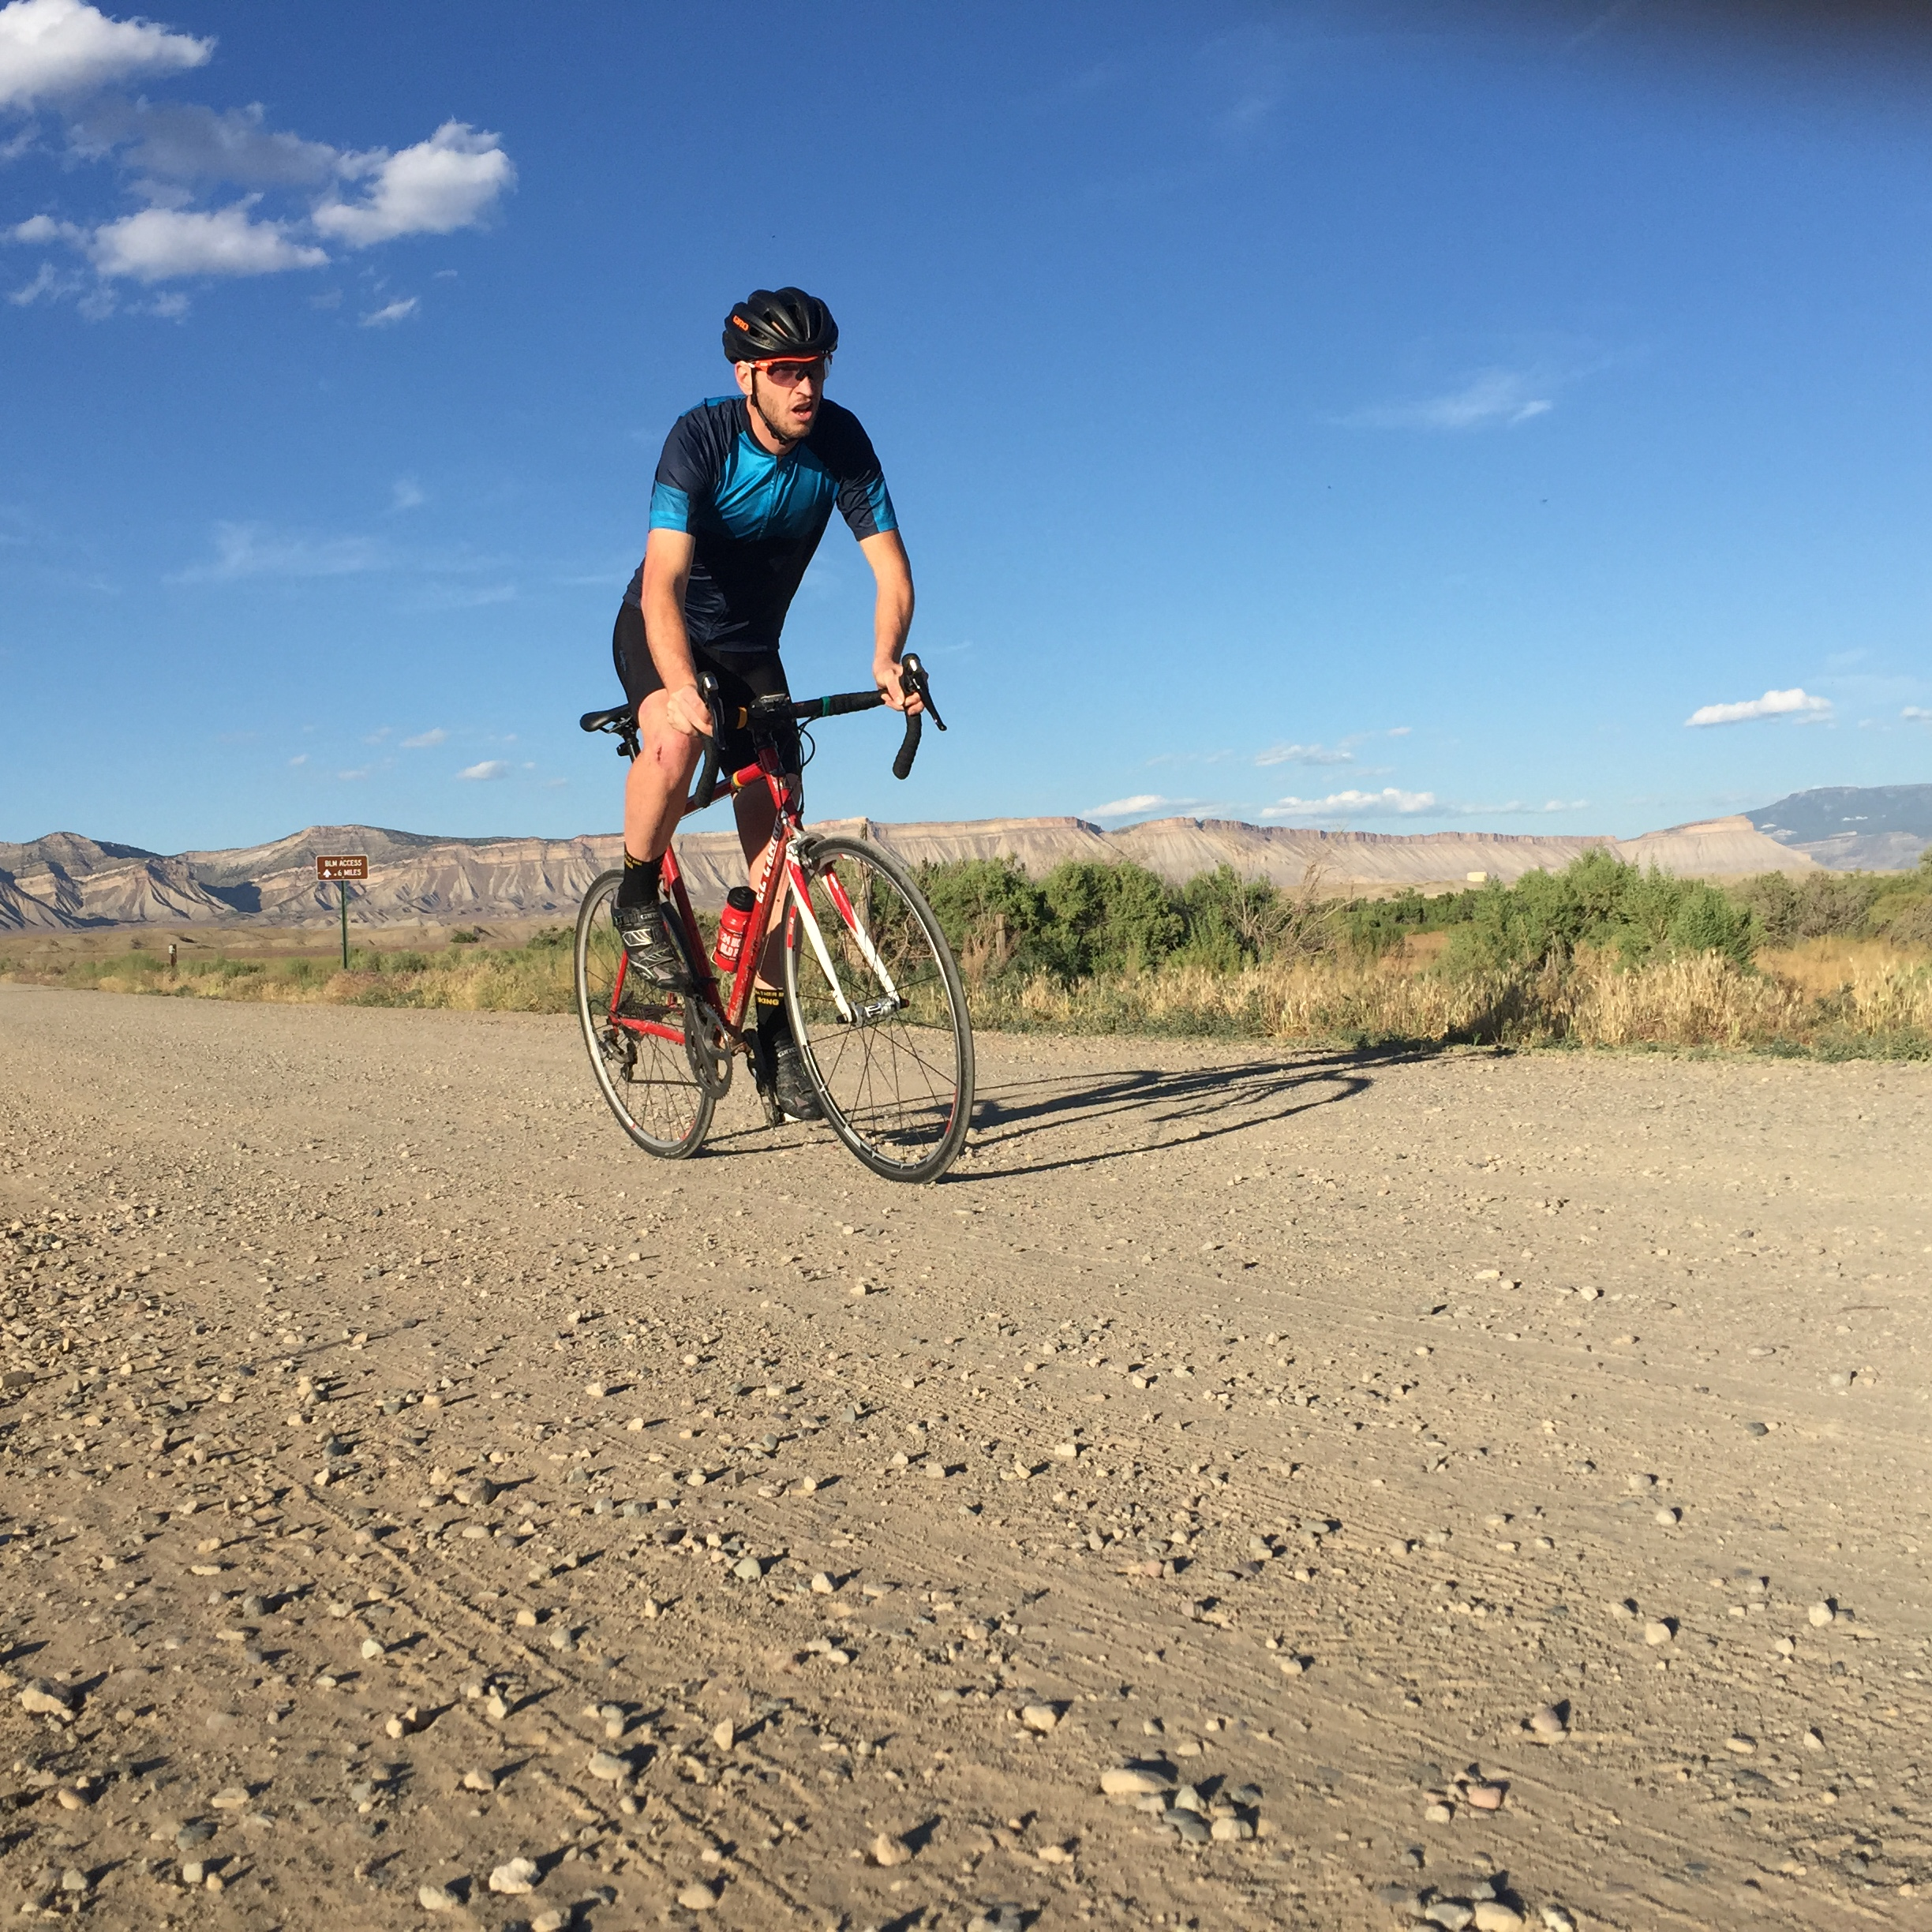 This photo is totally staged. I never grind any gravel on my road bike.